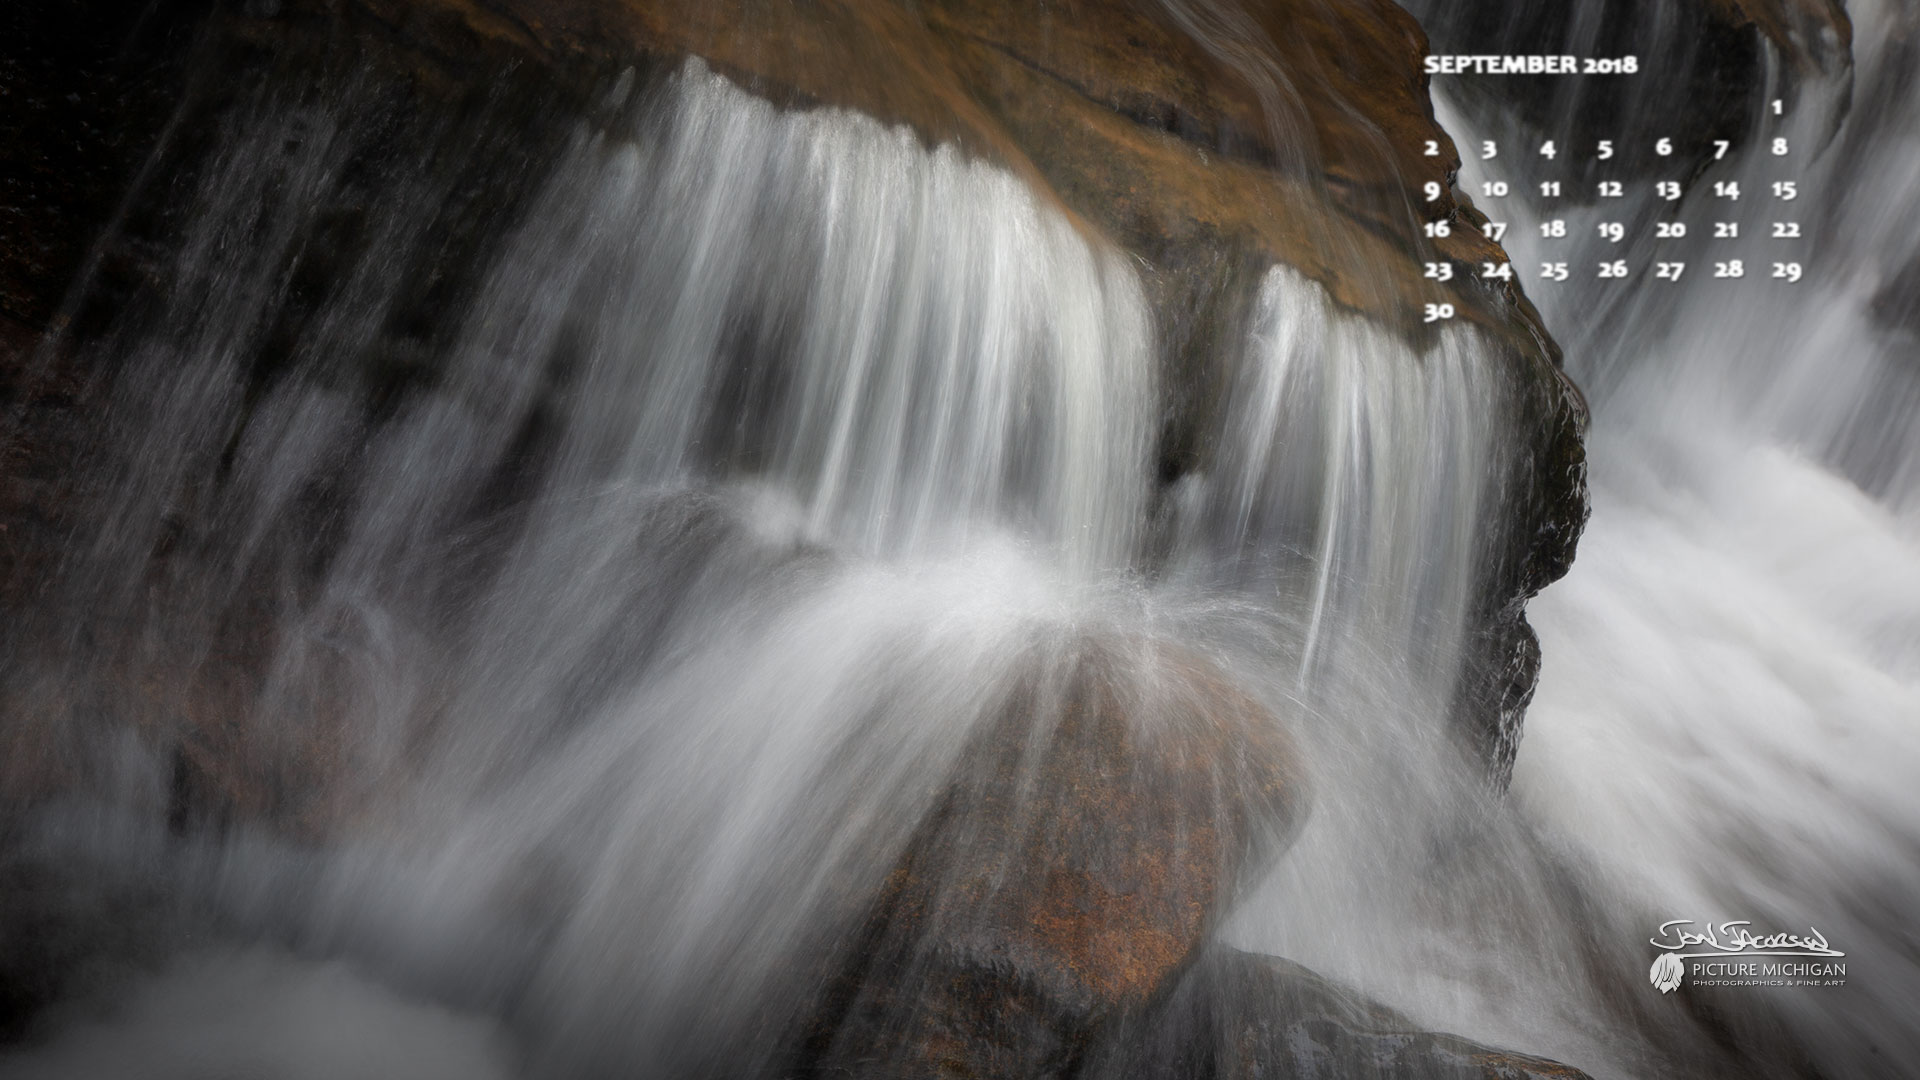 Au Sable Falls Calendar Desktop Wallpaper